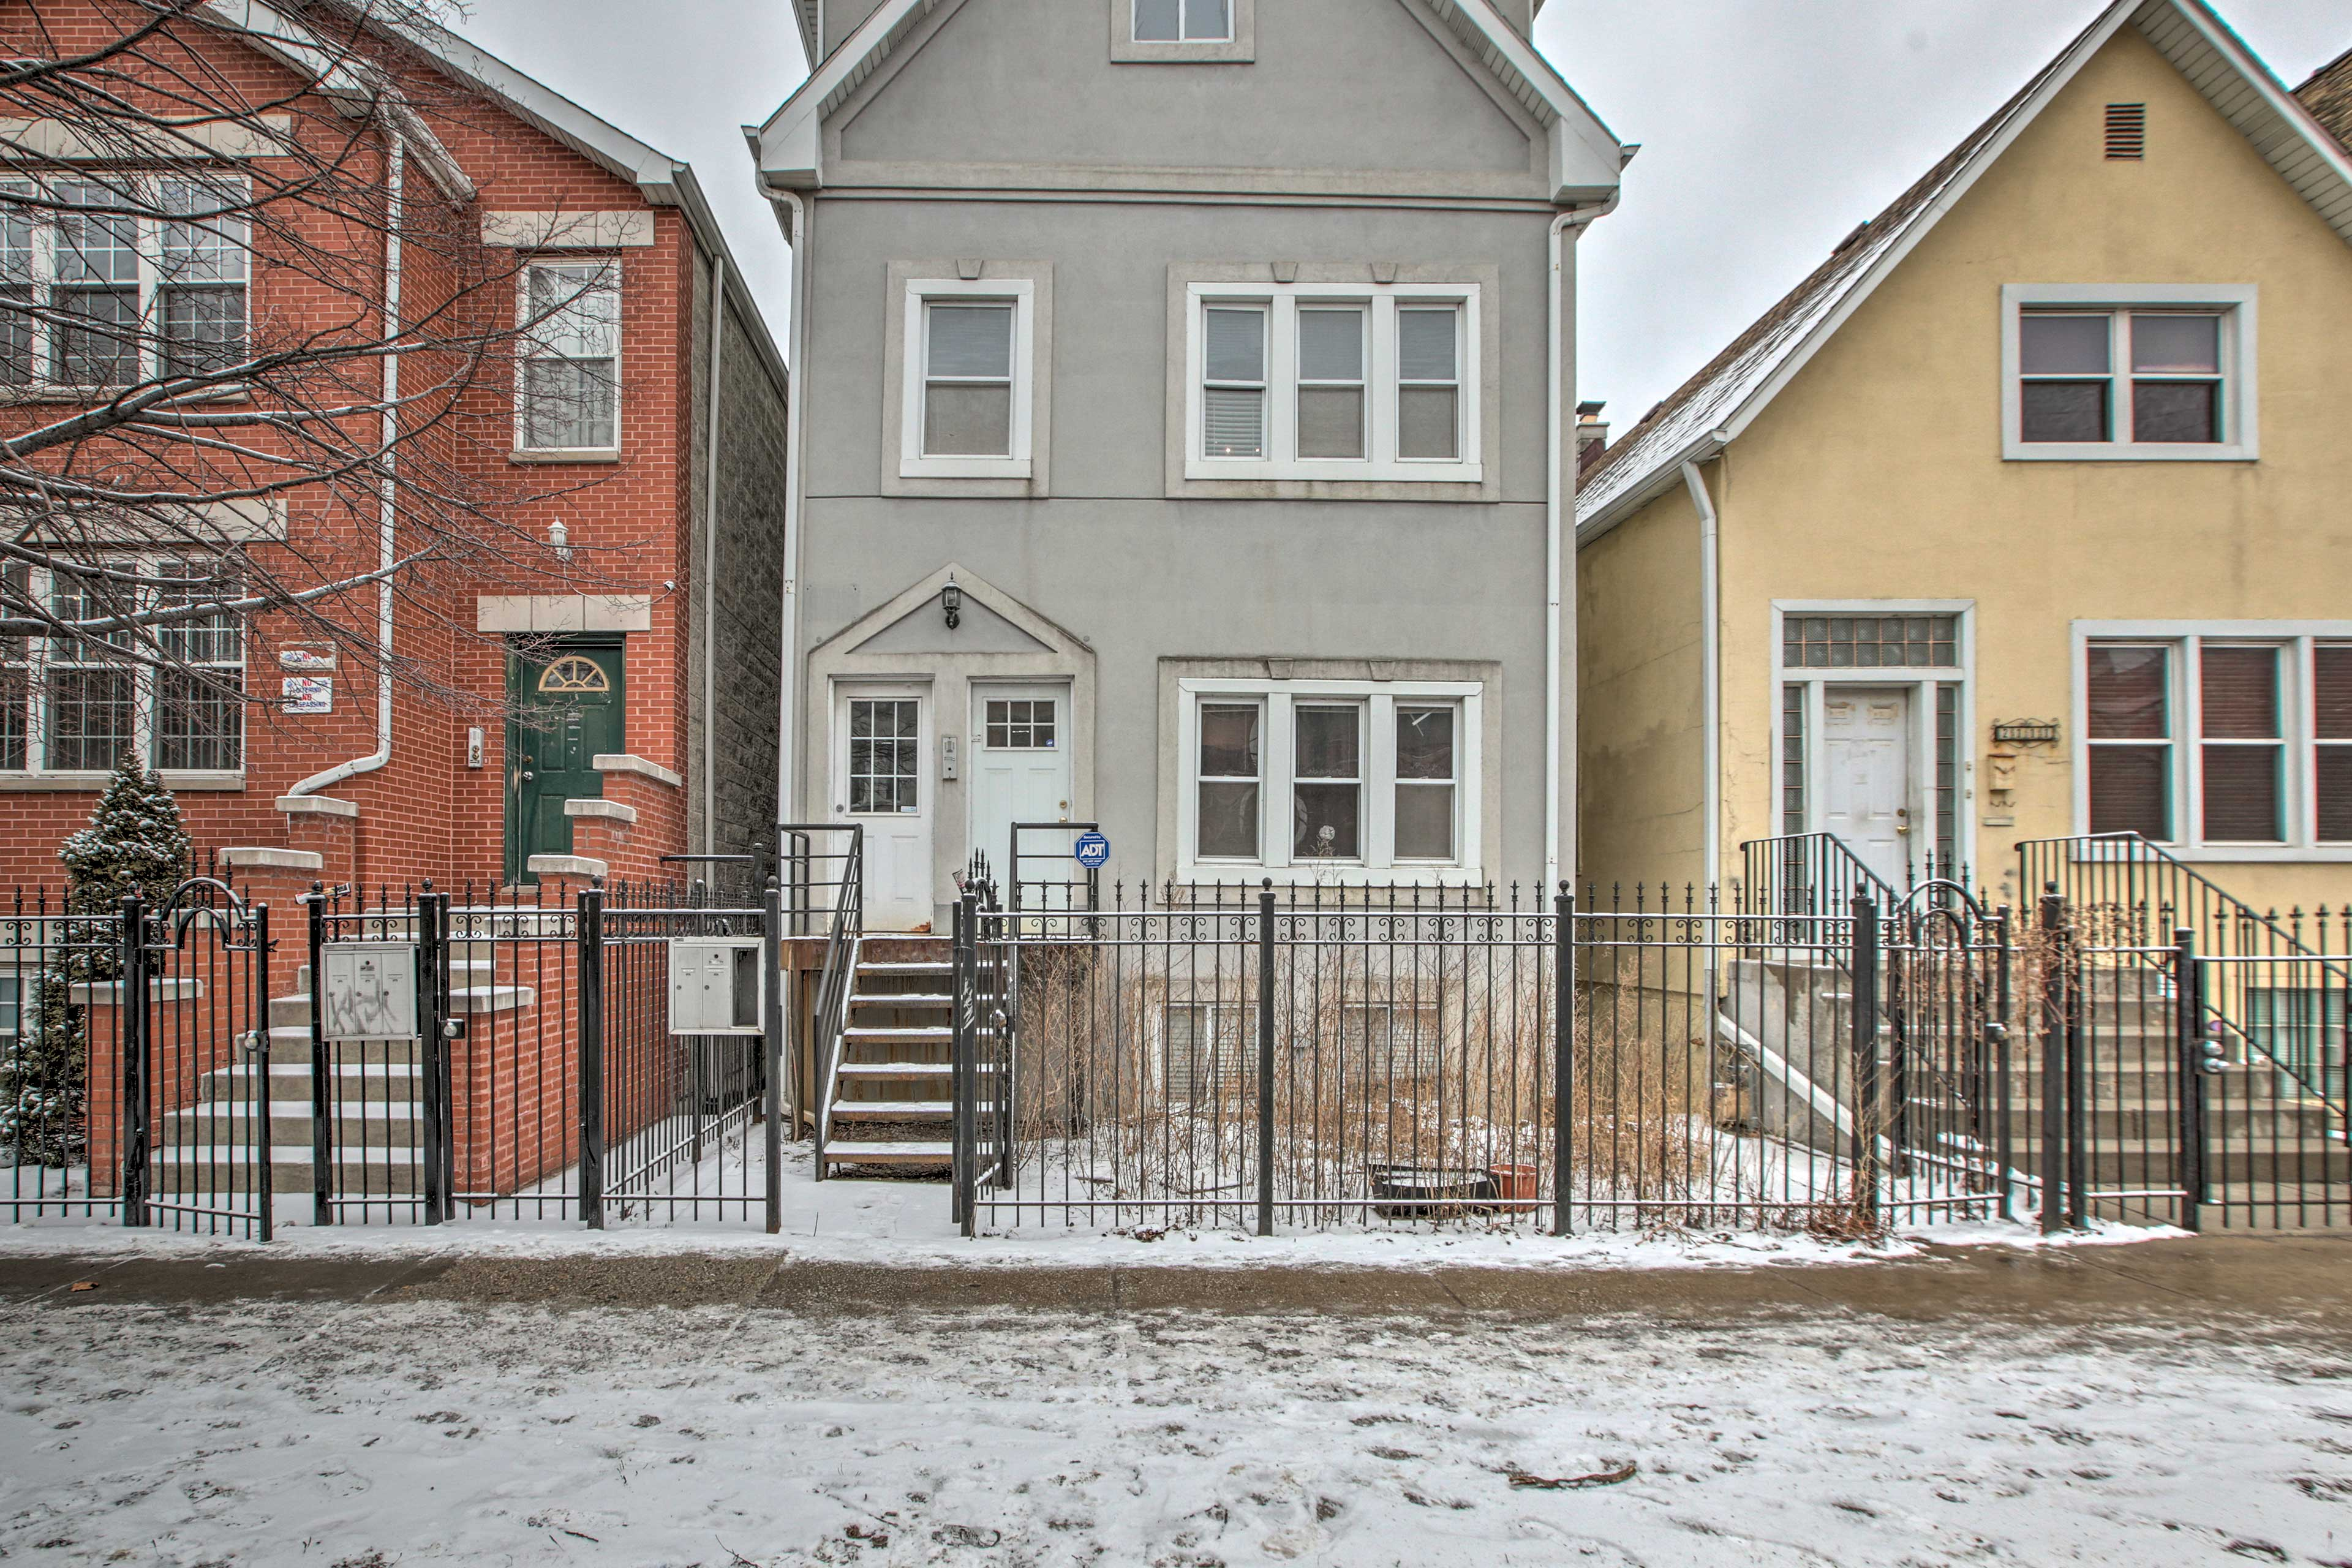 Nestled in Logan Square, the home sits minutes from bars, restaurants, & the L.